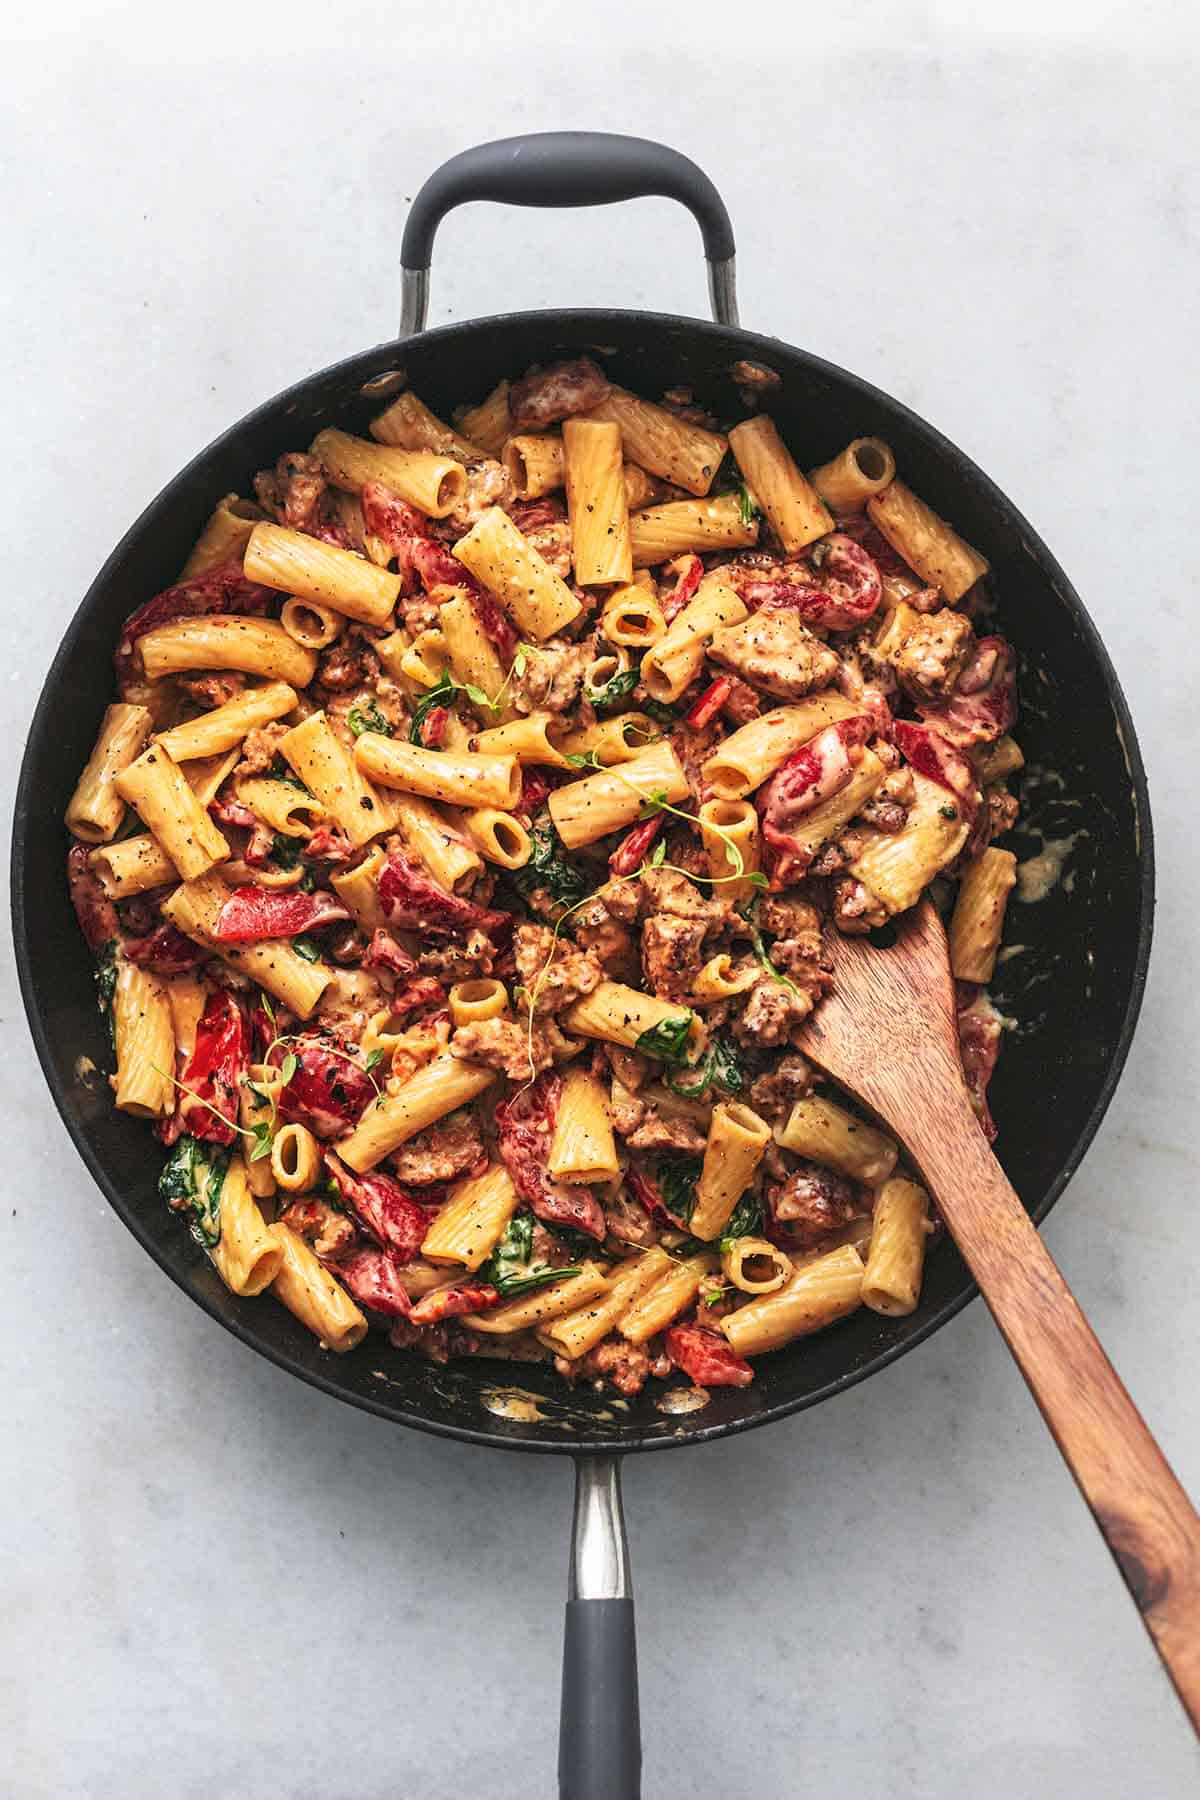 creamy pasta with roasted red peppers in a skillet with wooden spatula